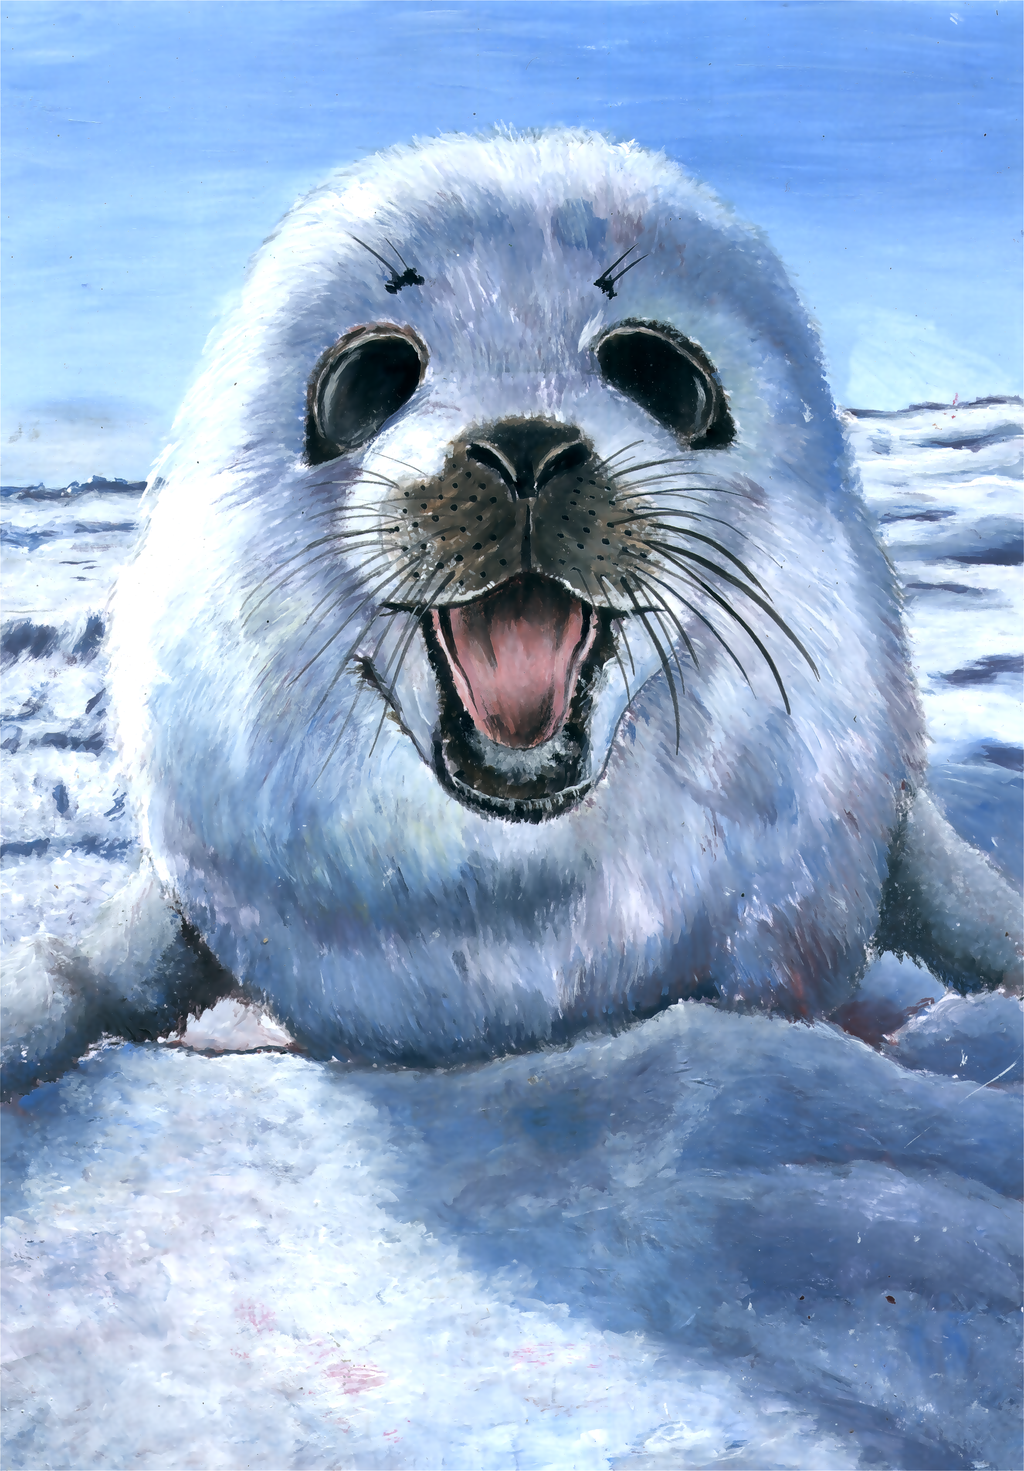 Harp seal pup by grim1978 Harp seal pup by grim1978 - Cute Baby Seal PNG